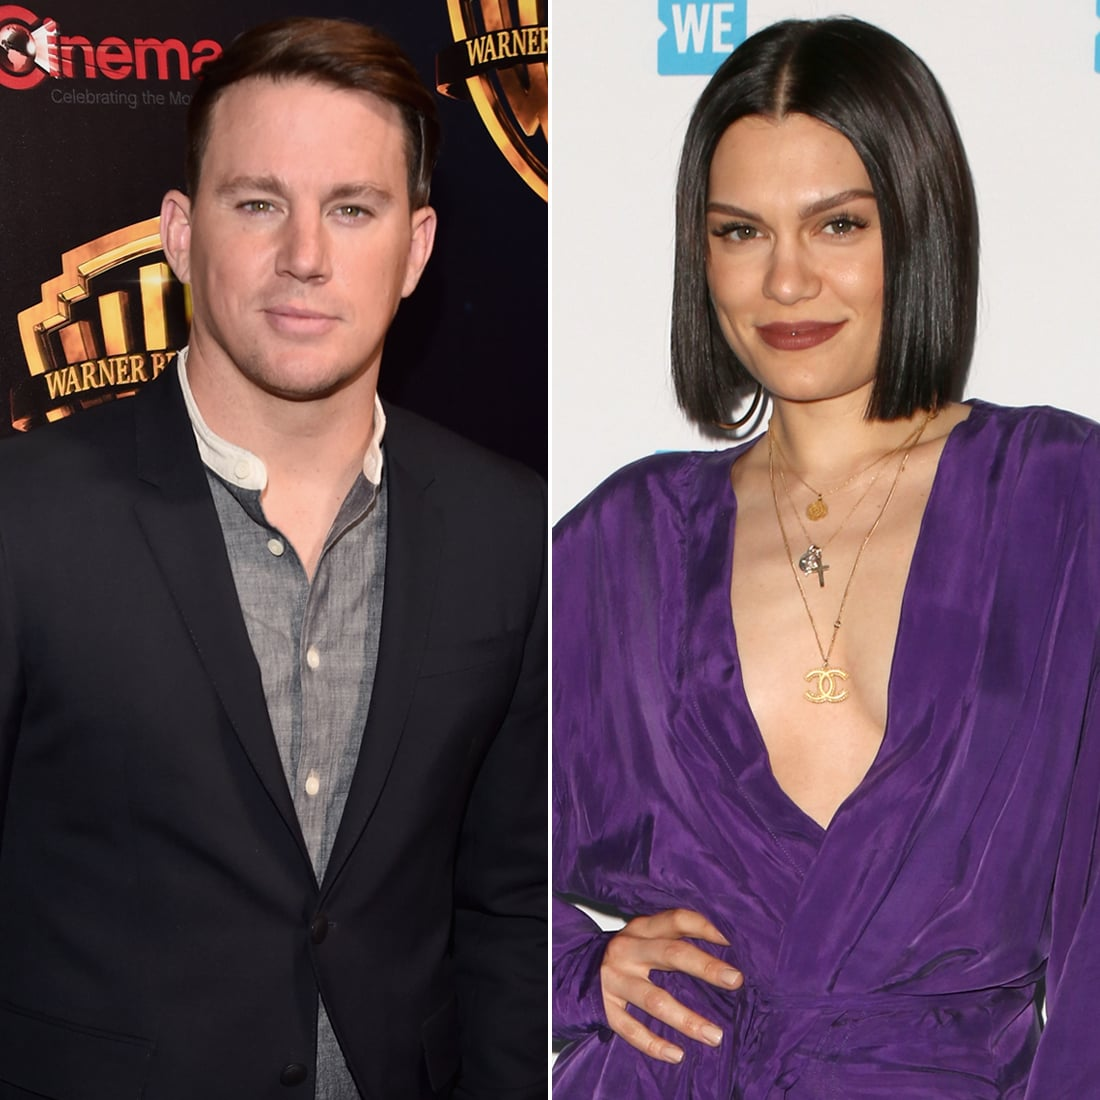 Who is channing tatum dating in Australia